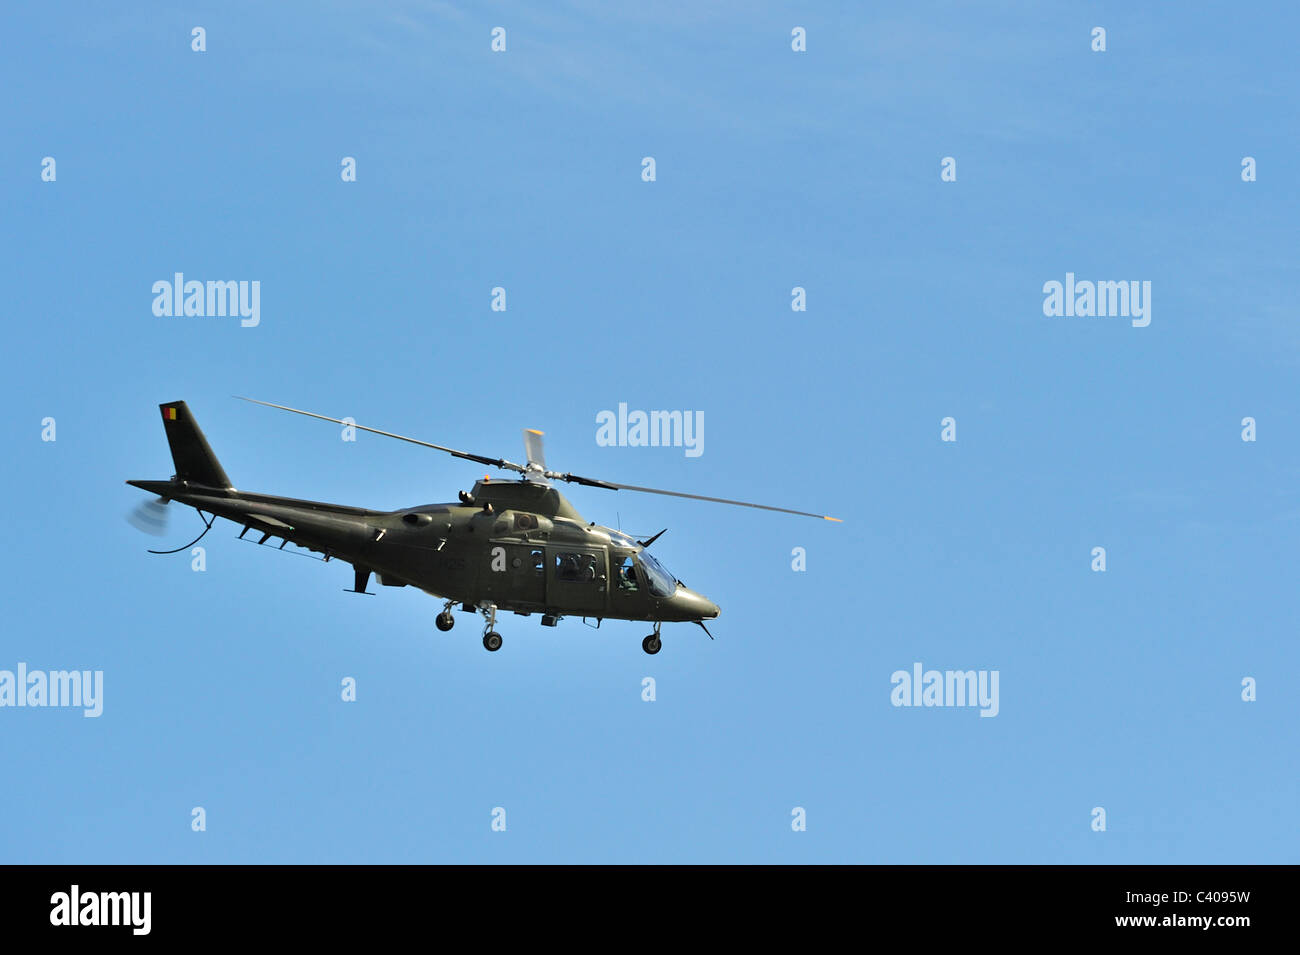 A-109 Agusta / AgustaWestland AW109 helicopter of the Belgian Air Component in flight, Belgium - Stock Image